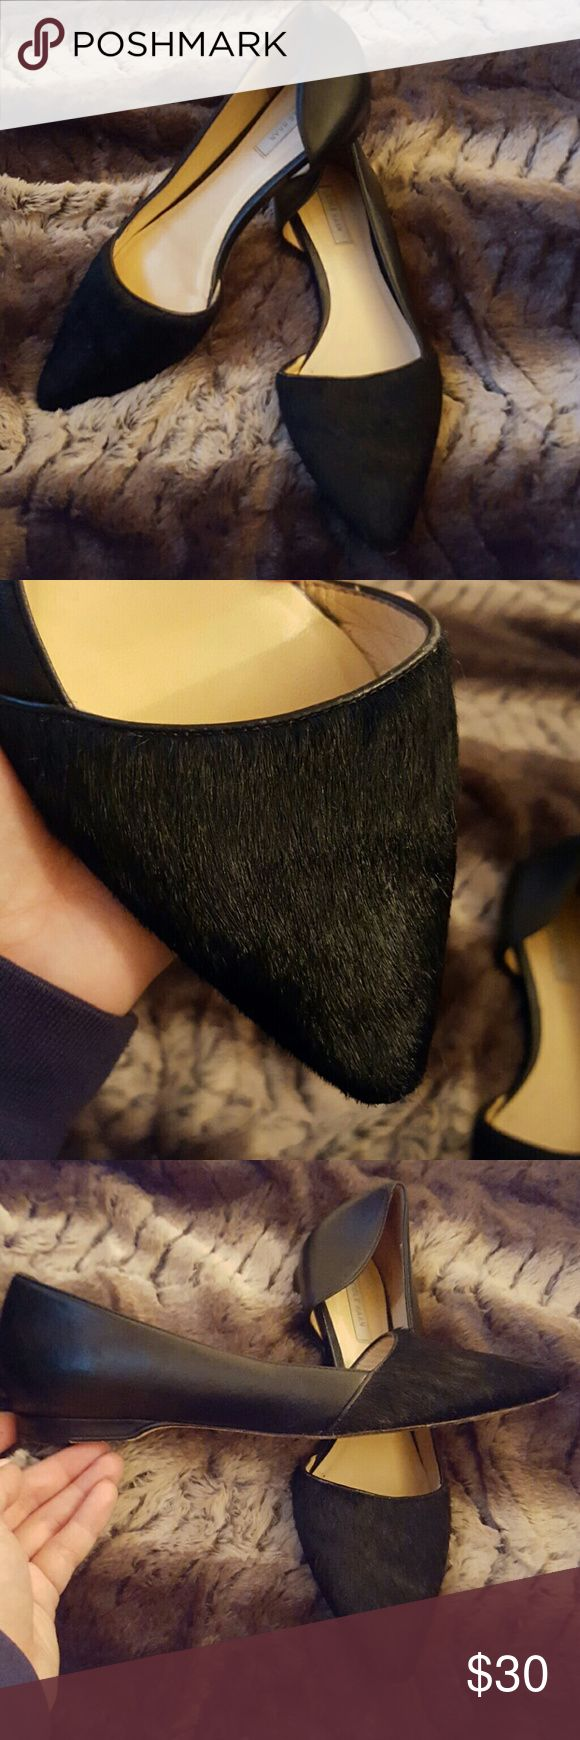 SALE ??Cole Haan LADY flats Condition 7/10, size 6B , Cole Haan, real fur and leather , if you have any questions just let me know. Thanks Cole Haan Shoes Flats & Loafers